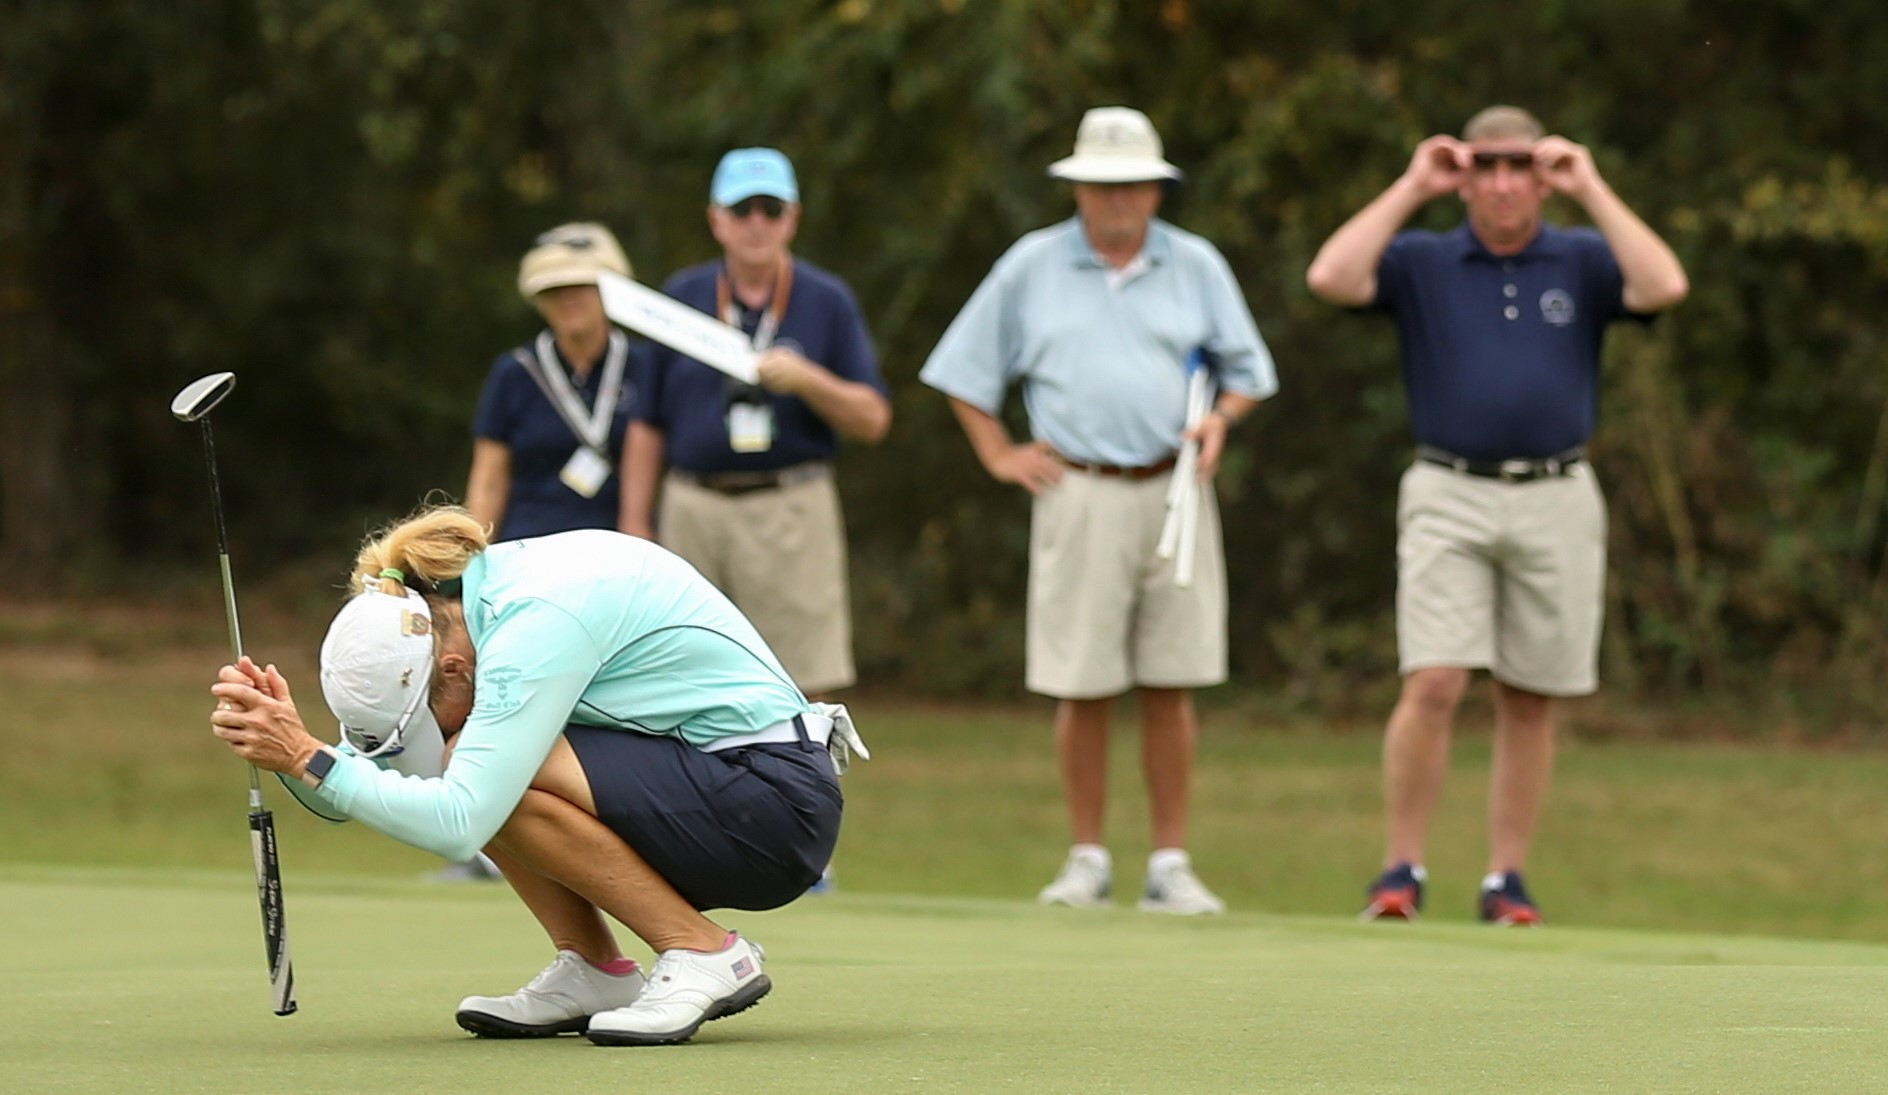 Mary Jane Hiestand, the U.S. Women's Mid-Amateur runner-up, reacts to a putt at Champions Golf Club in Houston. The 58-year-old very nearly played herself into the U.S. Women's Open -- a new perk at this year's championship. USGA photo